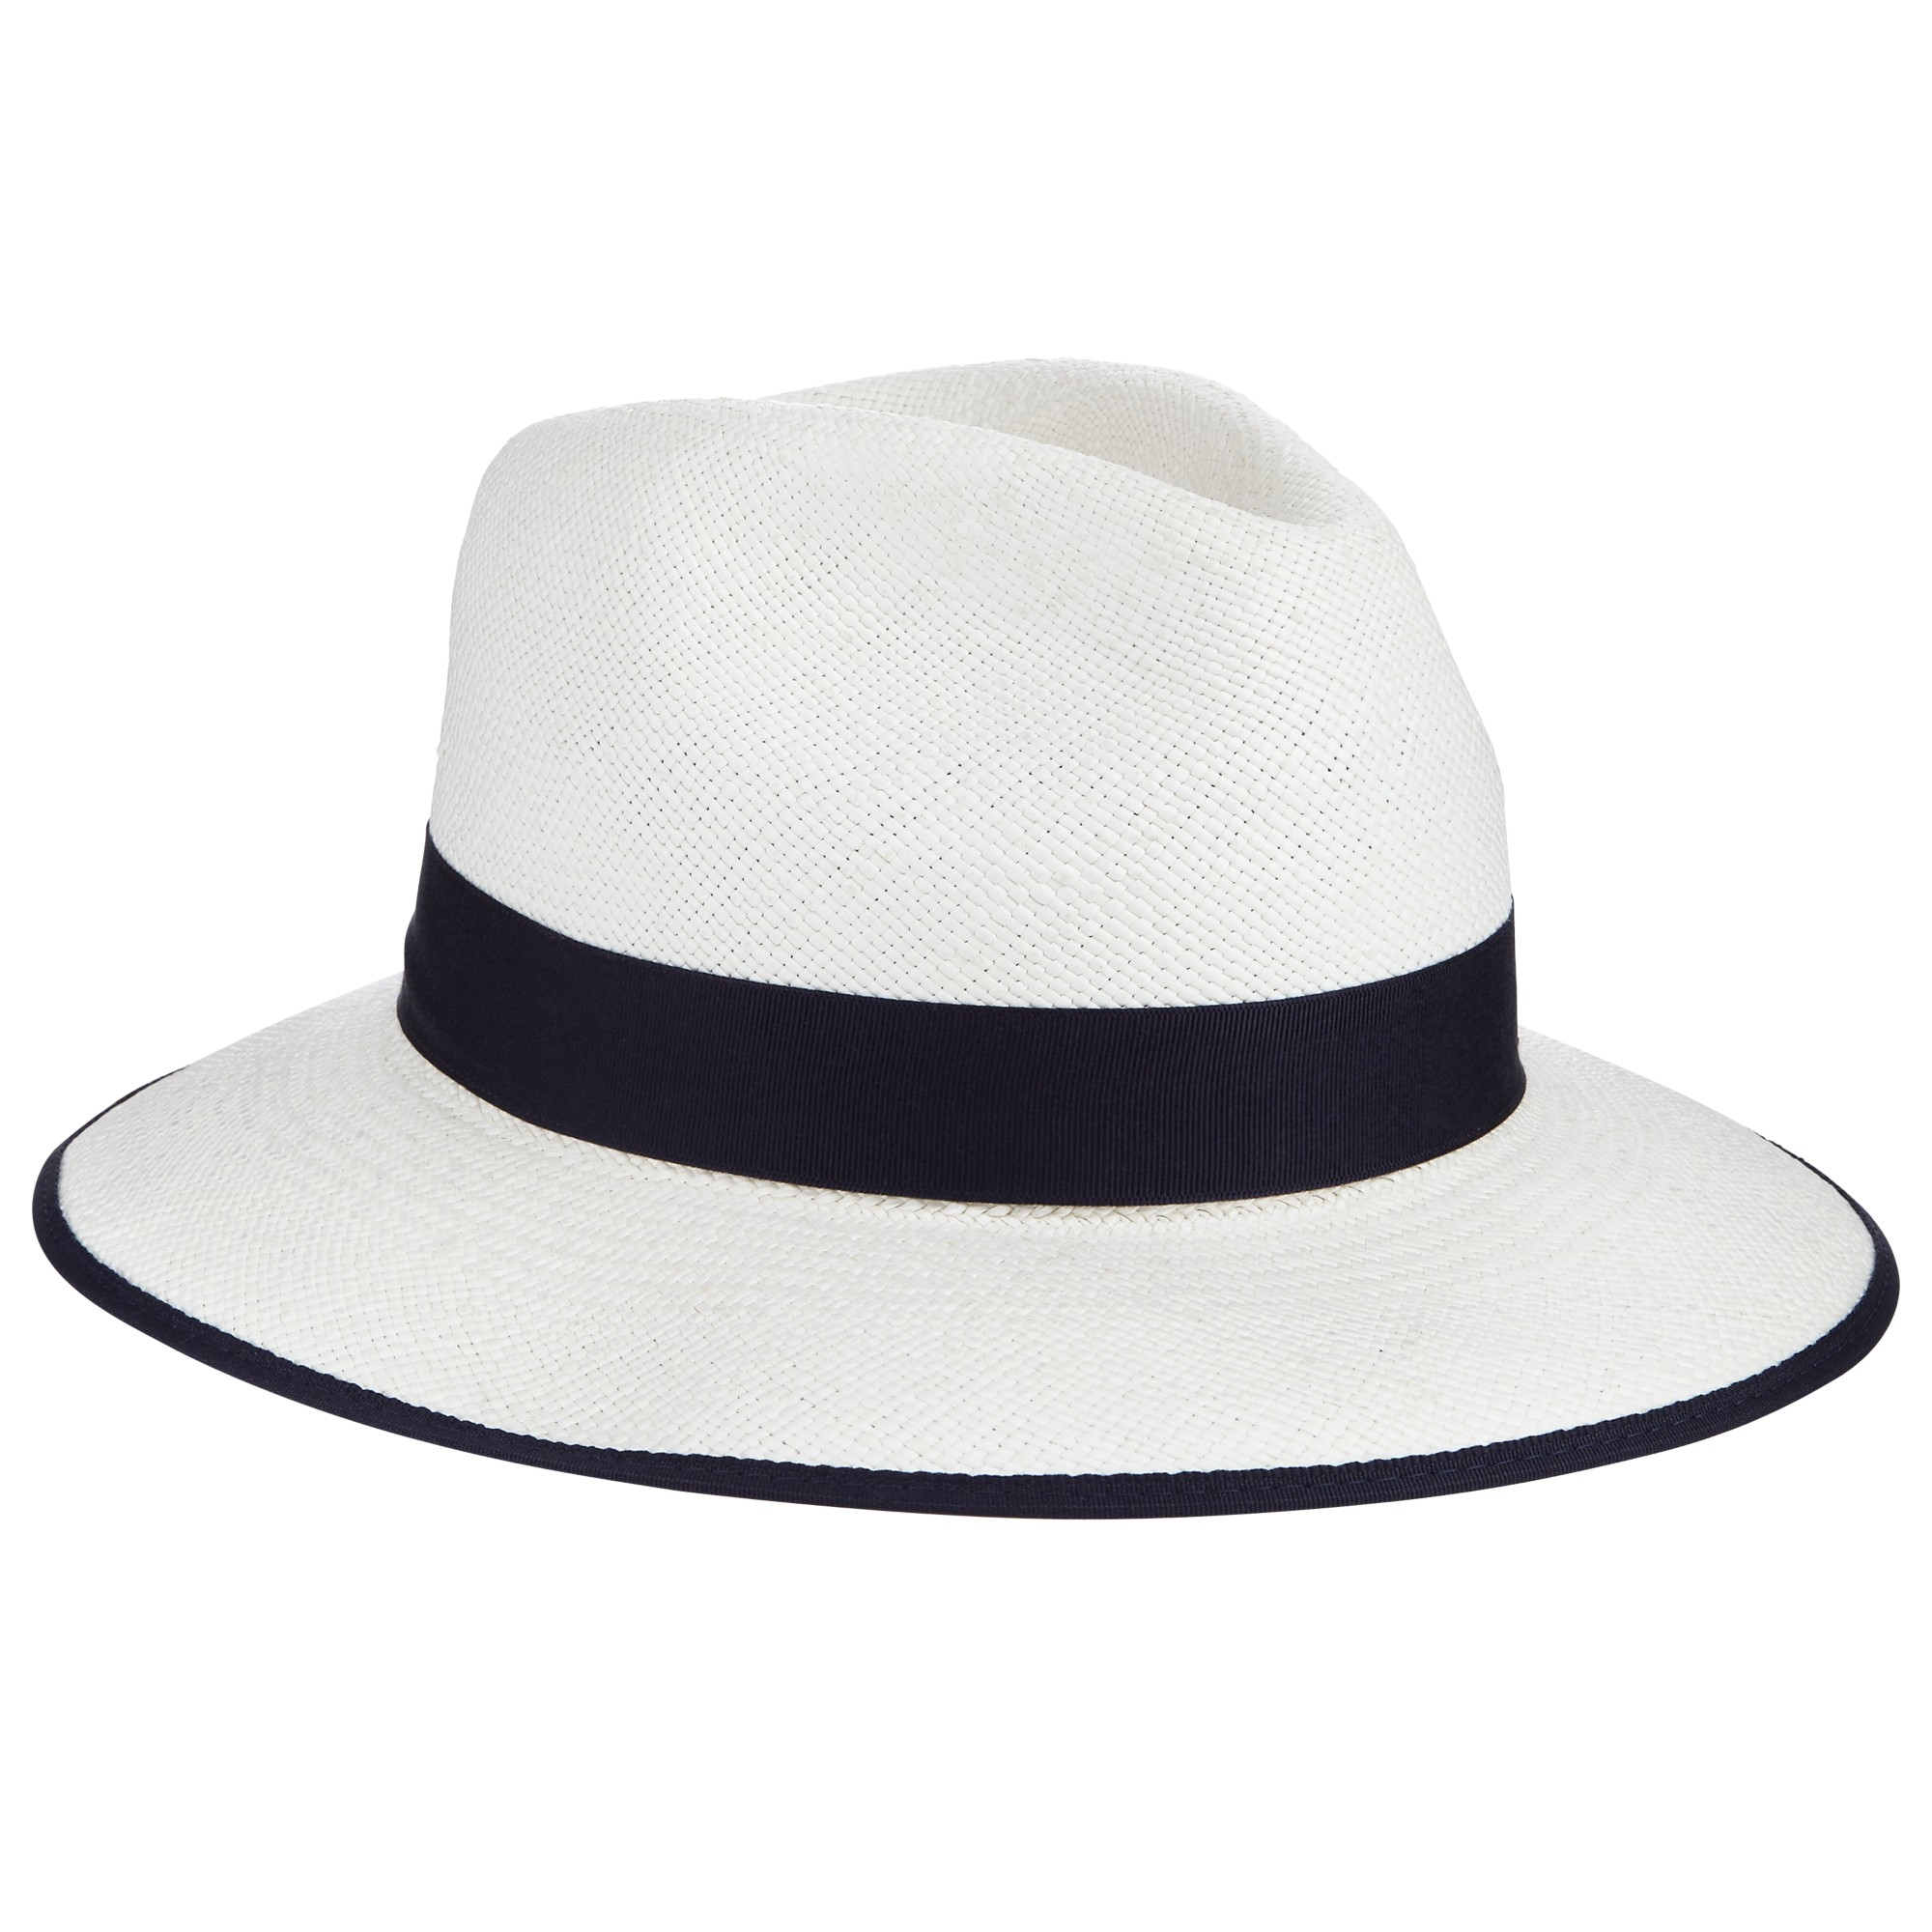 2d2dca1081f Christys  Classic Down Brim Panama Hat in White for Men - Lyst